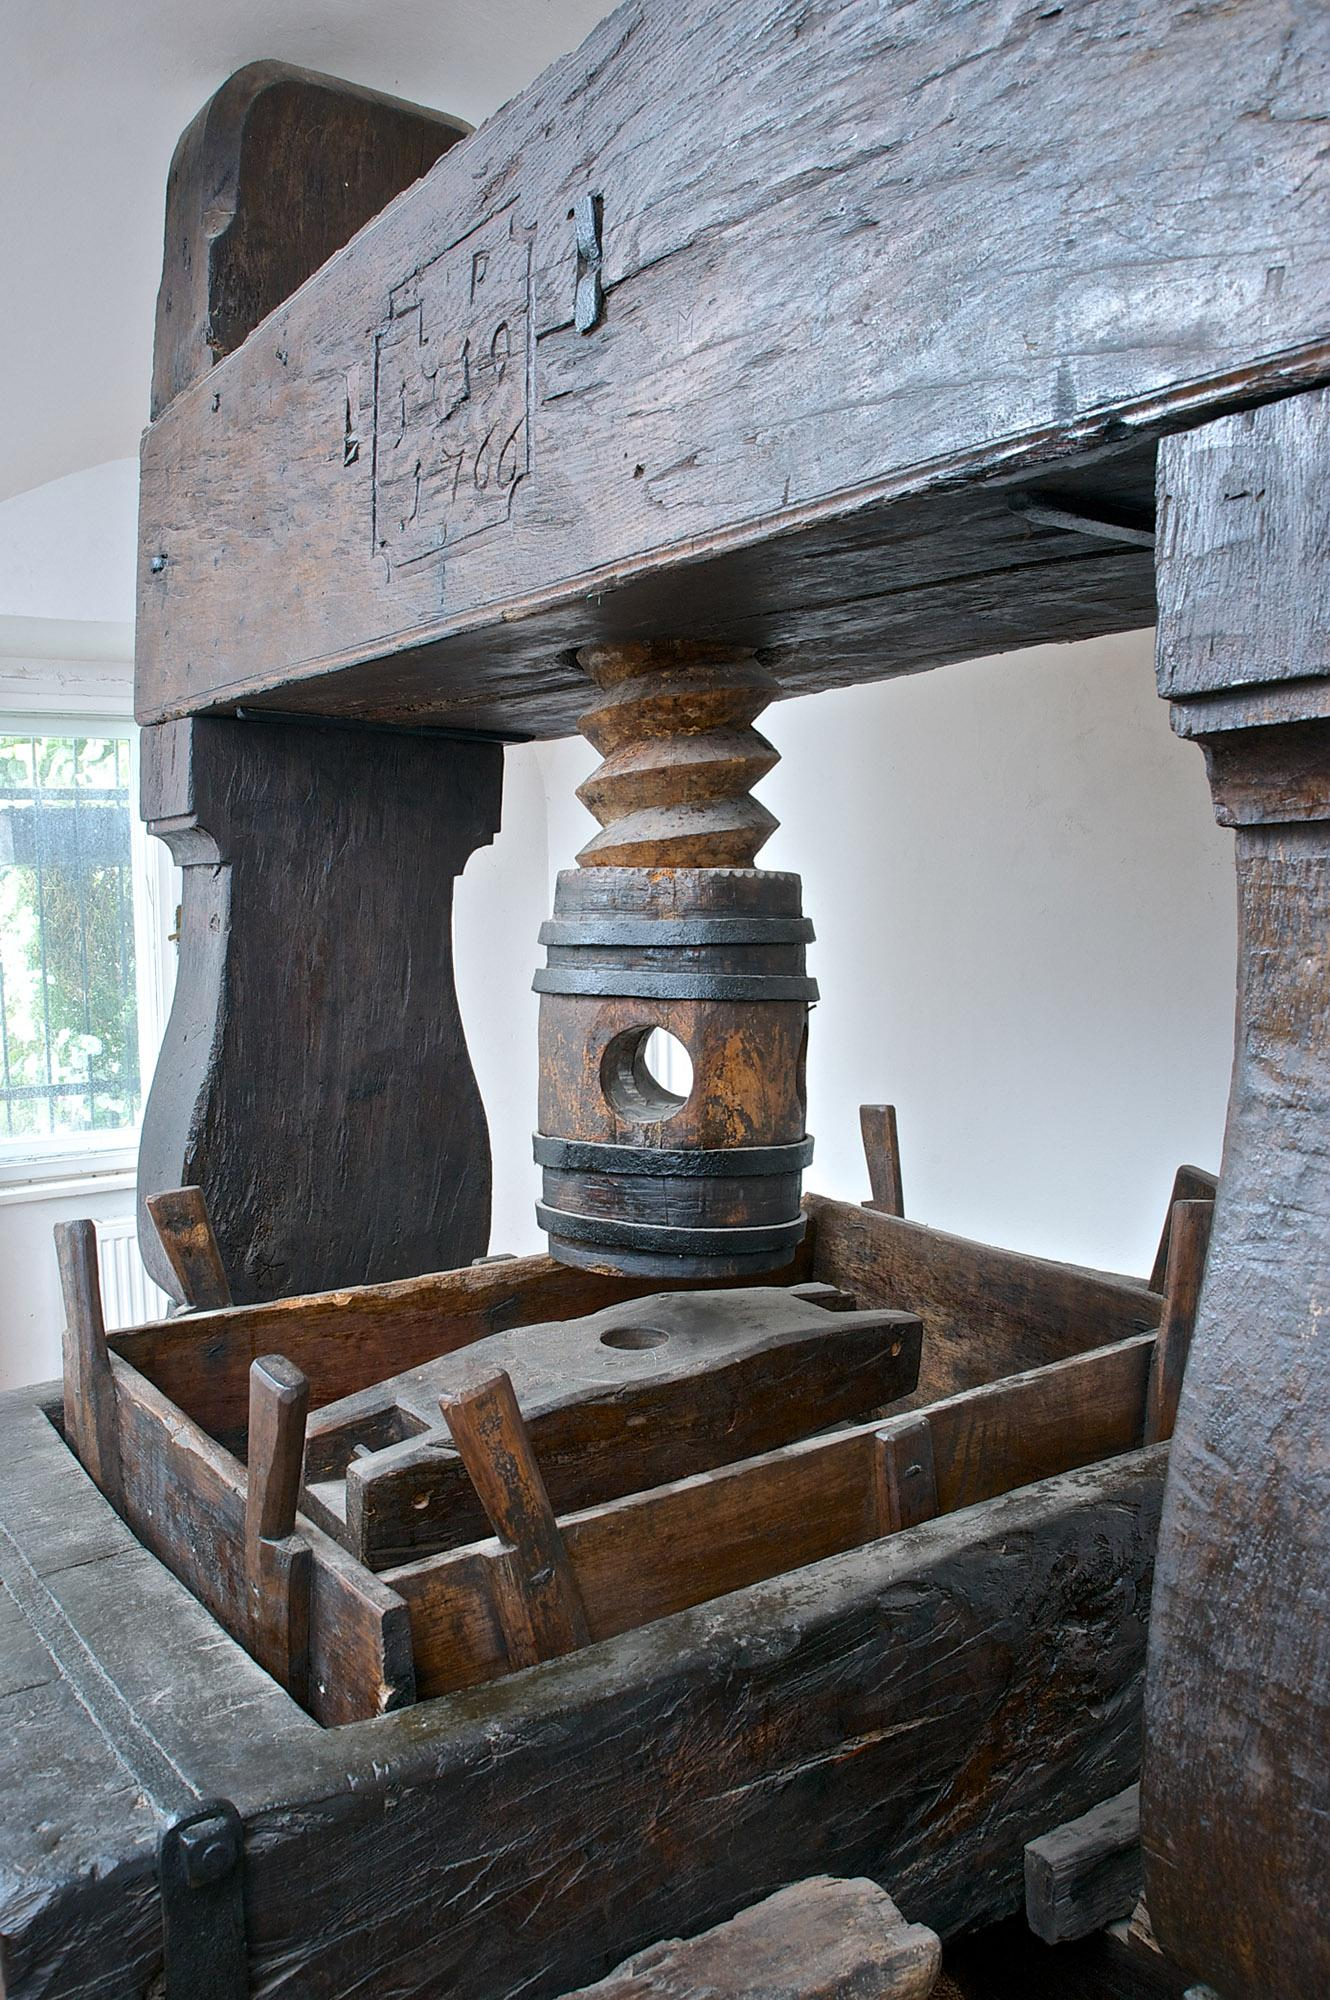 The museum houses a unique collection of wine presses, the oldest of which is a monumental spindle press from 1719, which stands 280 cm (9 feet) tall. – © Dominika Švédová